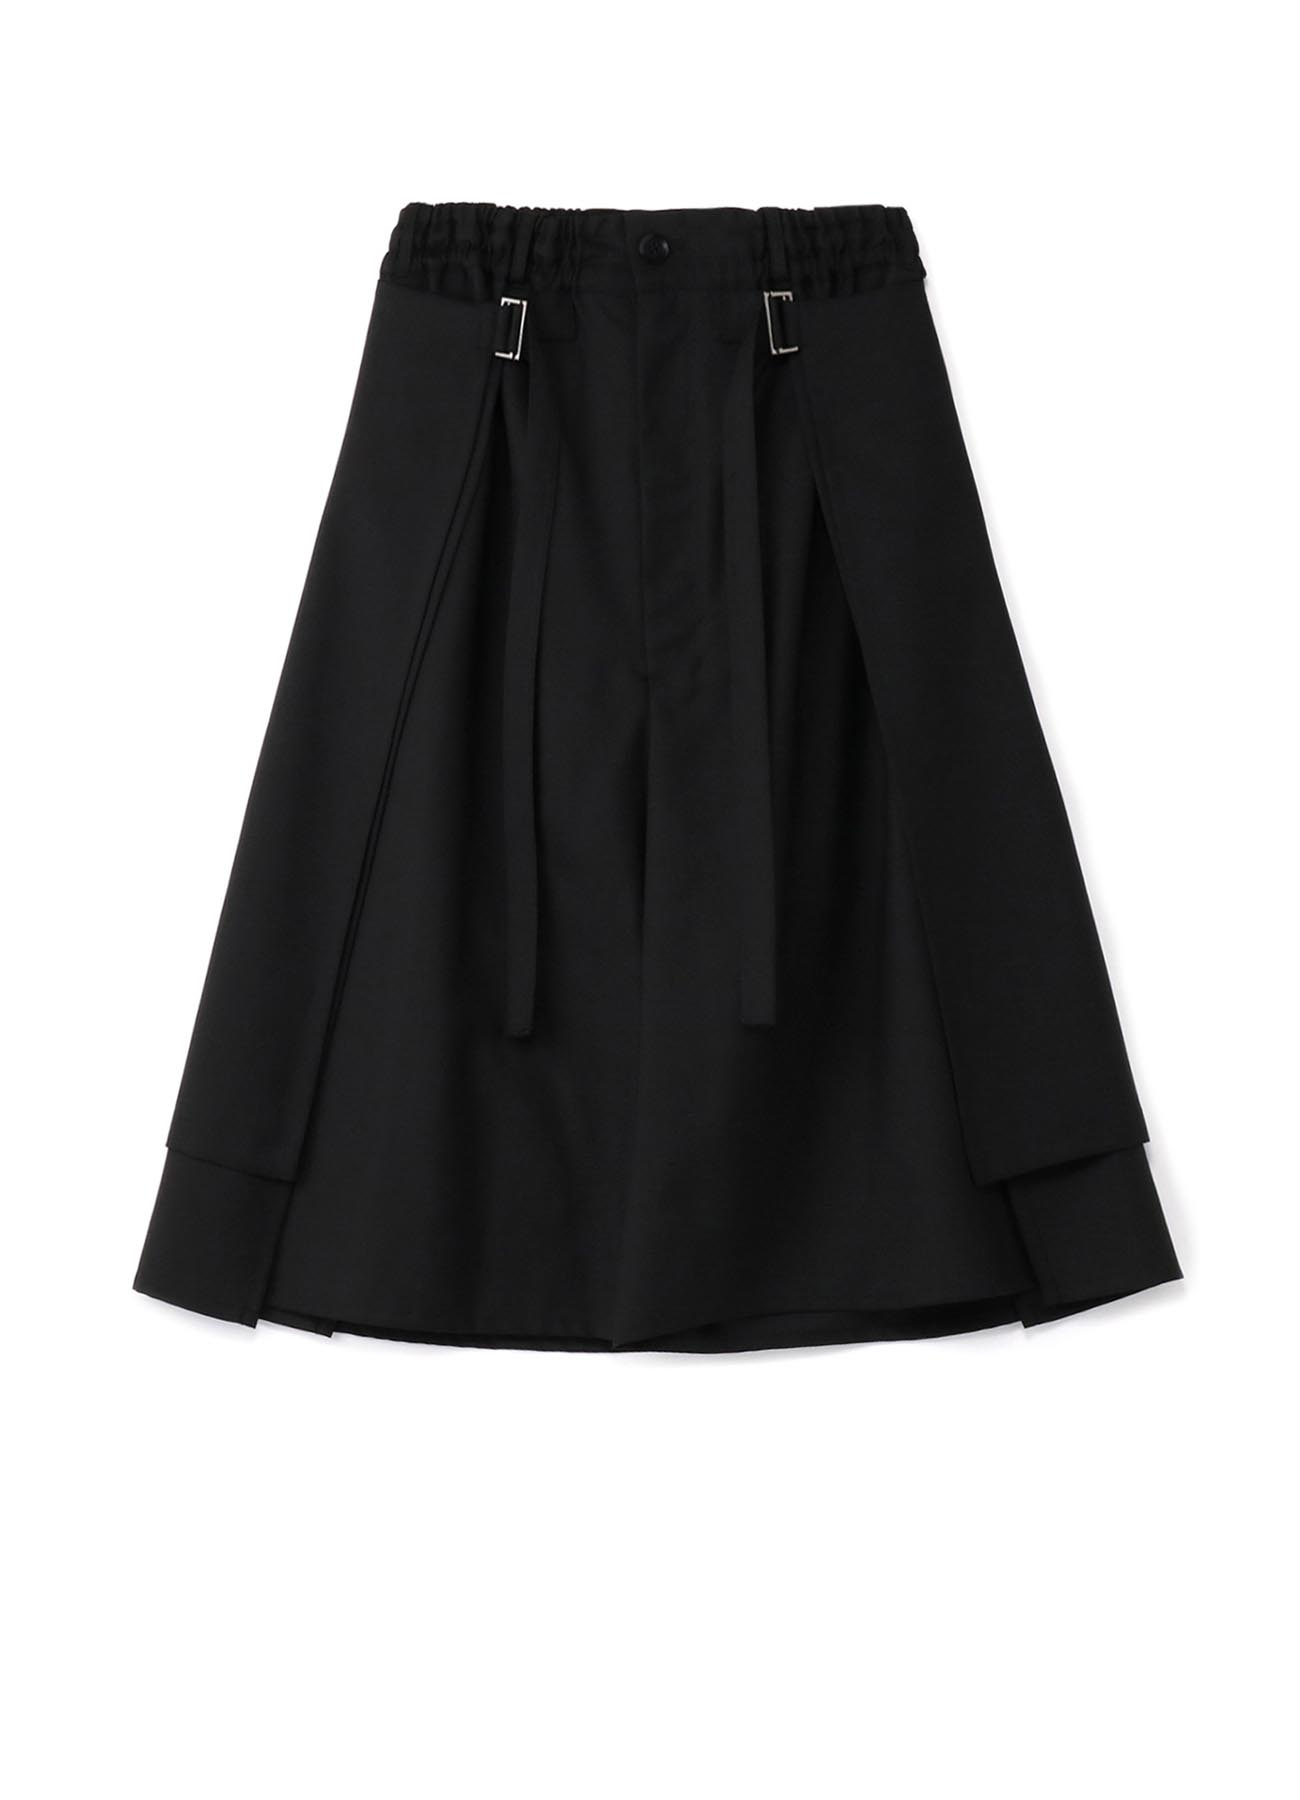 T/W Gabardine Round and Round Skirt Pants